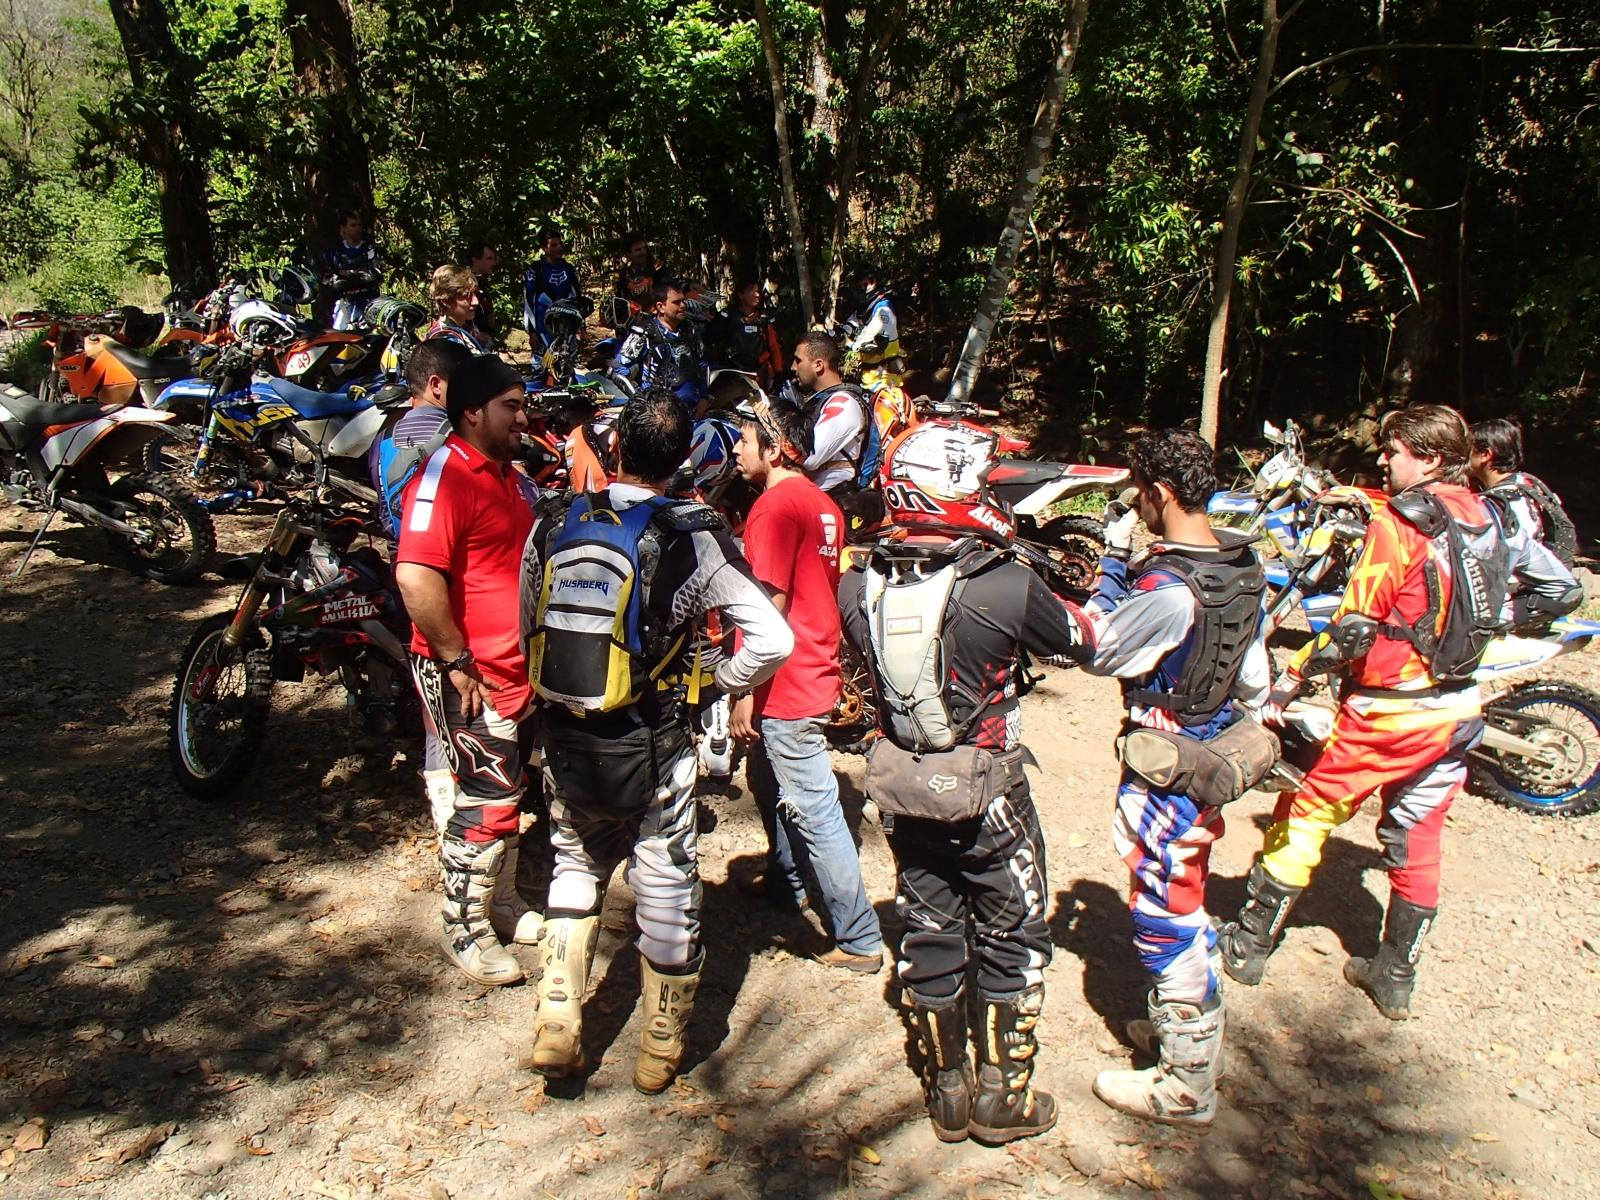 http://www.motorrad-bilder.at/slideshows/291/010638/enduro_offroad_costa_rica_007.jpg